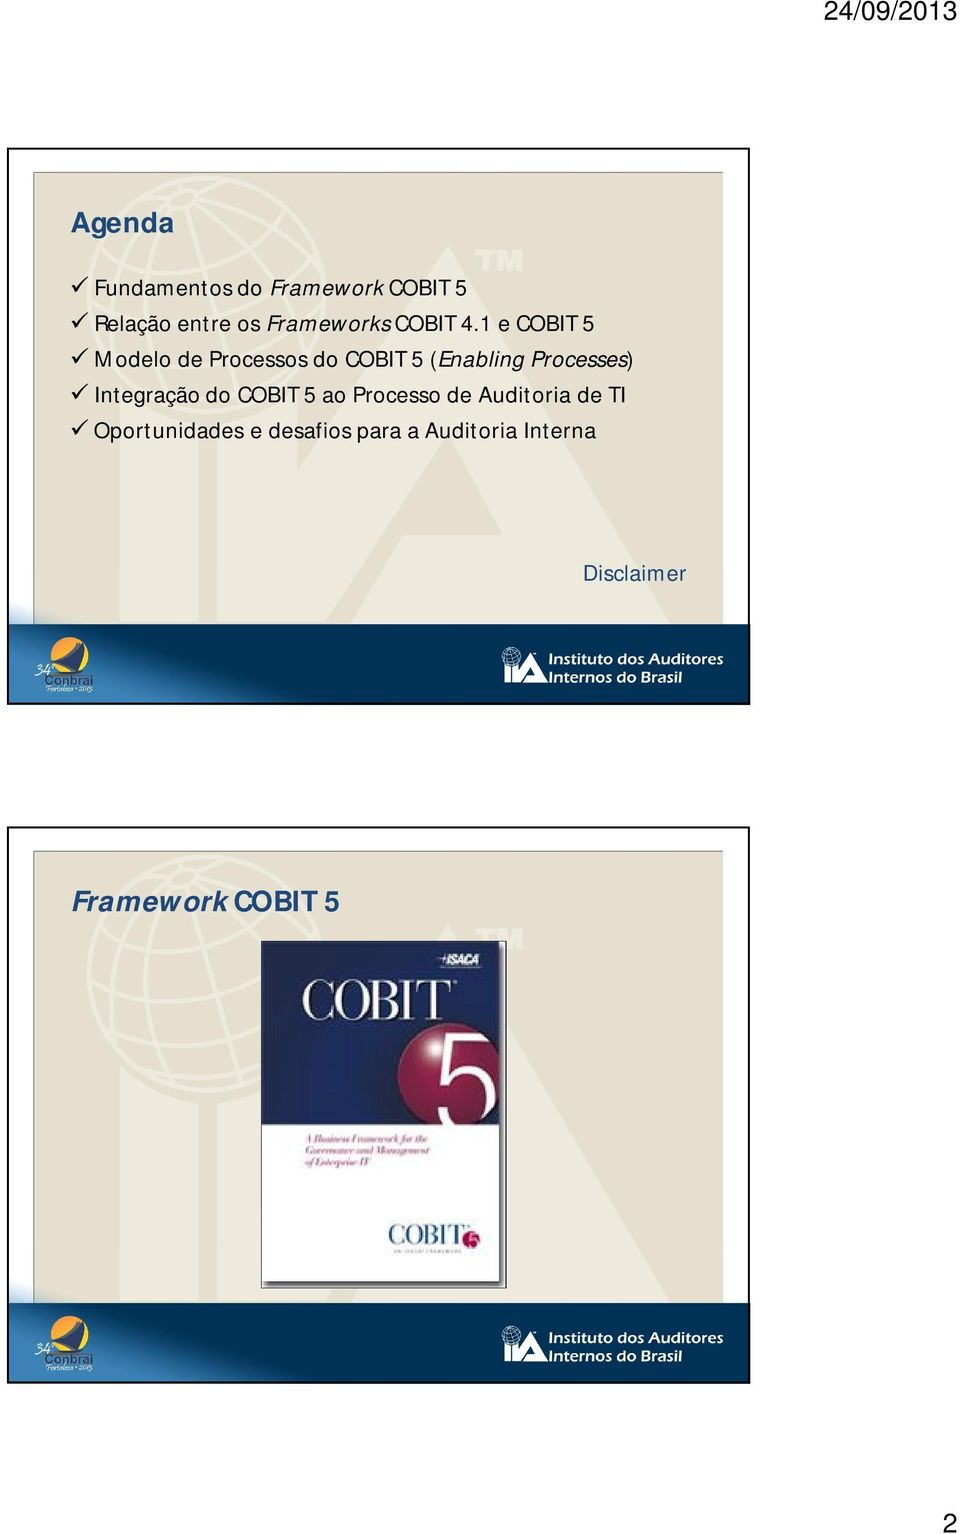 1 e COBIT 5 Modelo de Processos do COBIT 5 (Enabling Processes)